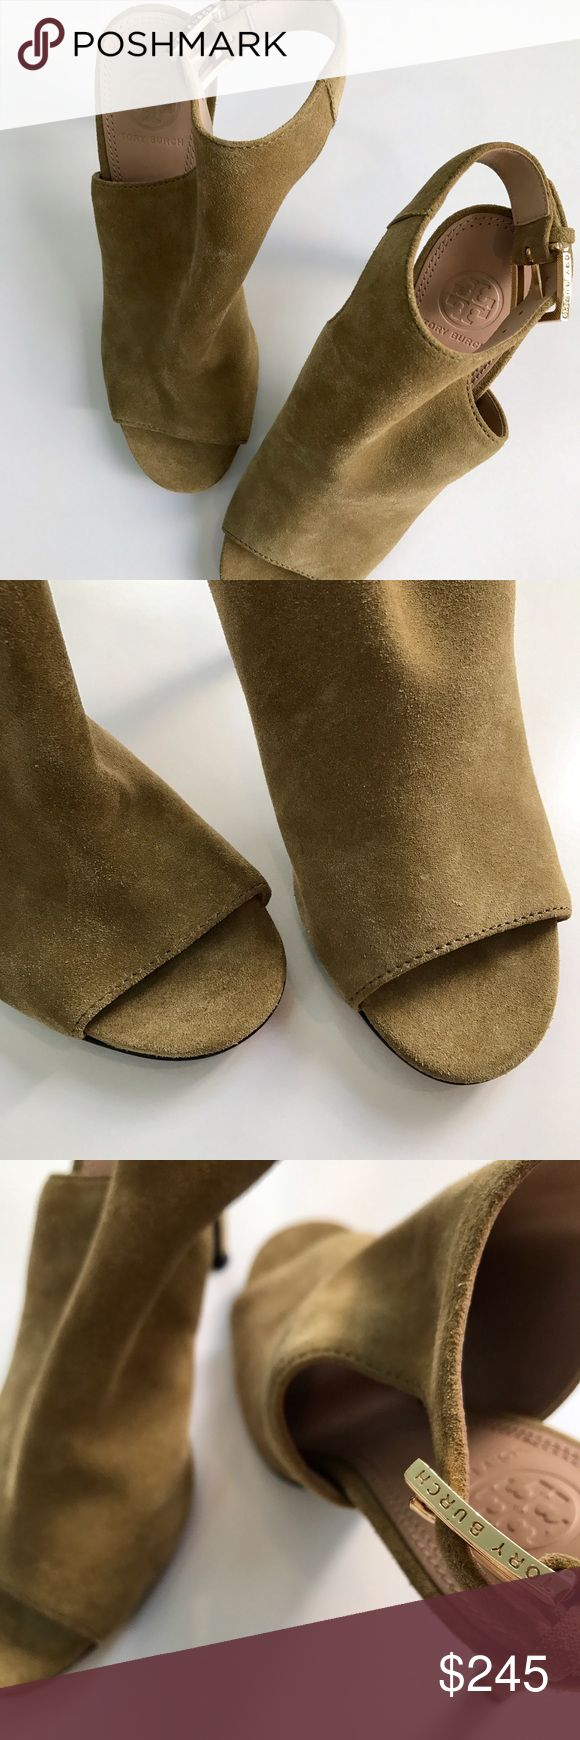 Tory Butch Britannia Heels - Like New!!! Tory Butch Britannia heels in a beautiful shade of green. Only worn once! Retail $395! Tory Burch Shoes Heels